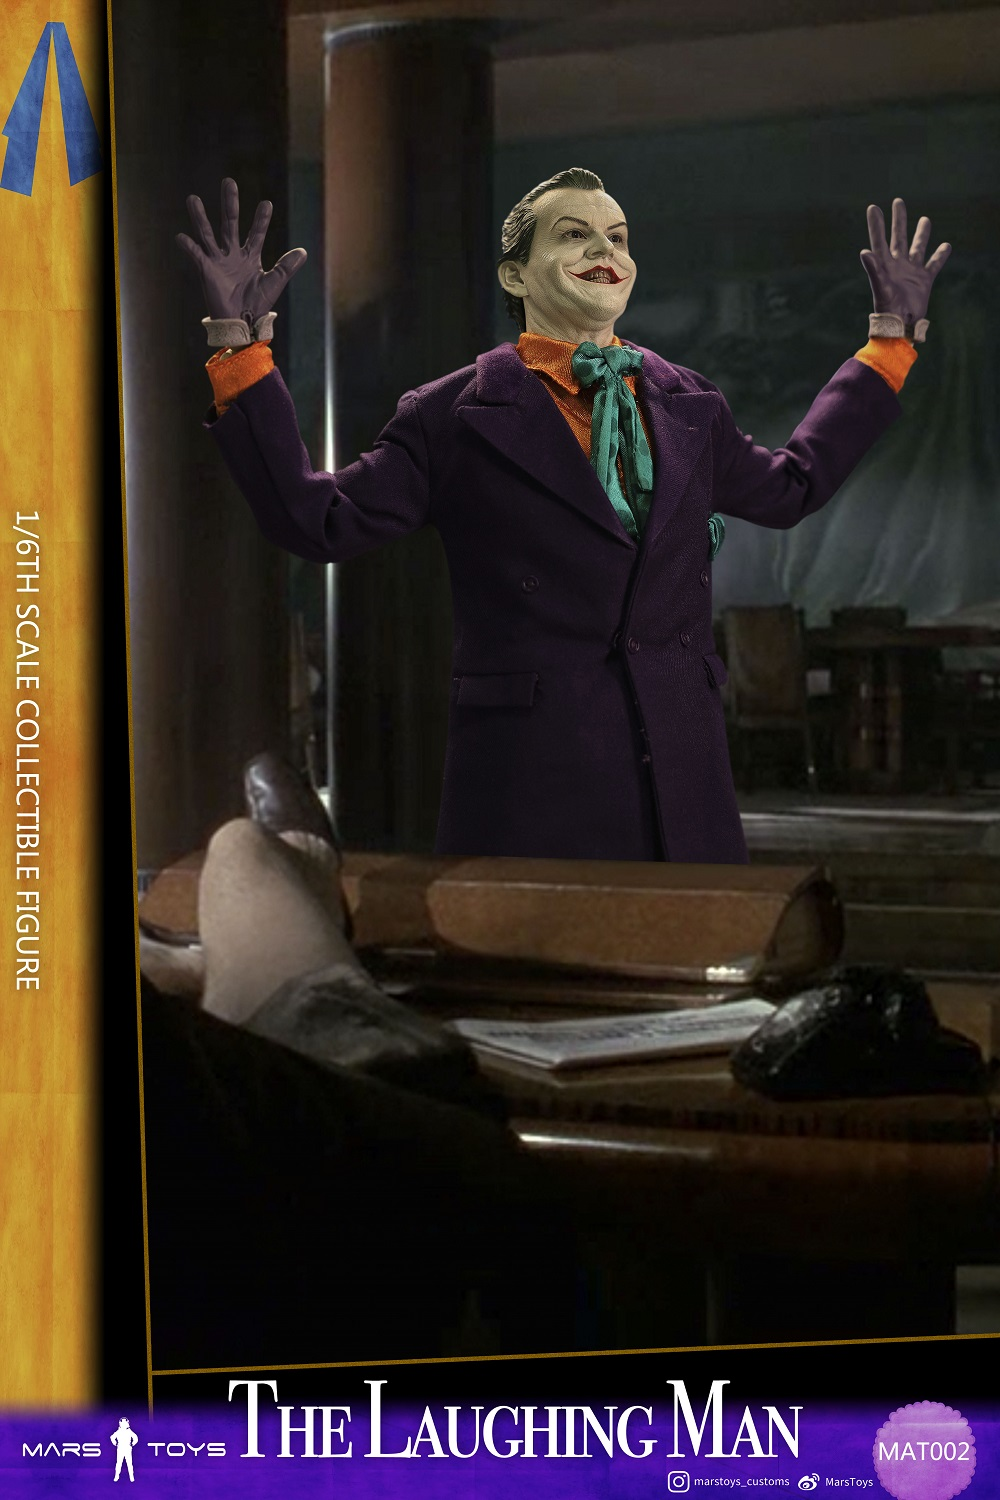 BATMAN 1989 JOKER THE LAUGHING MAN JACK NICHOLSON 1/6 SCALE FIGURE 6